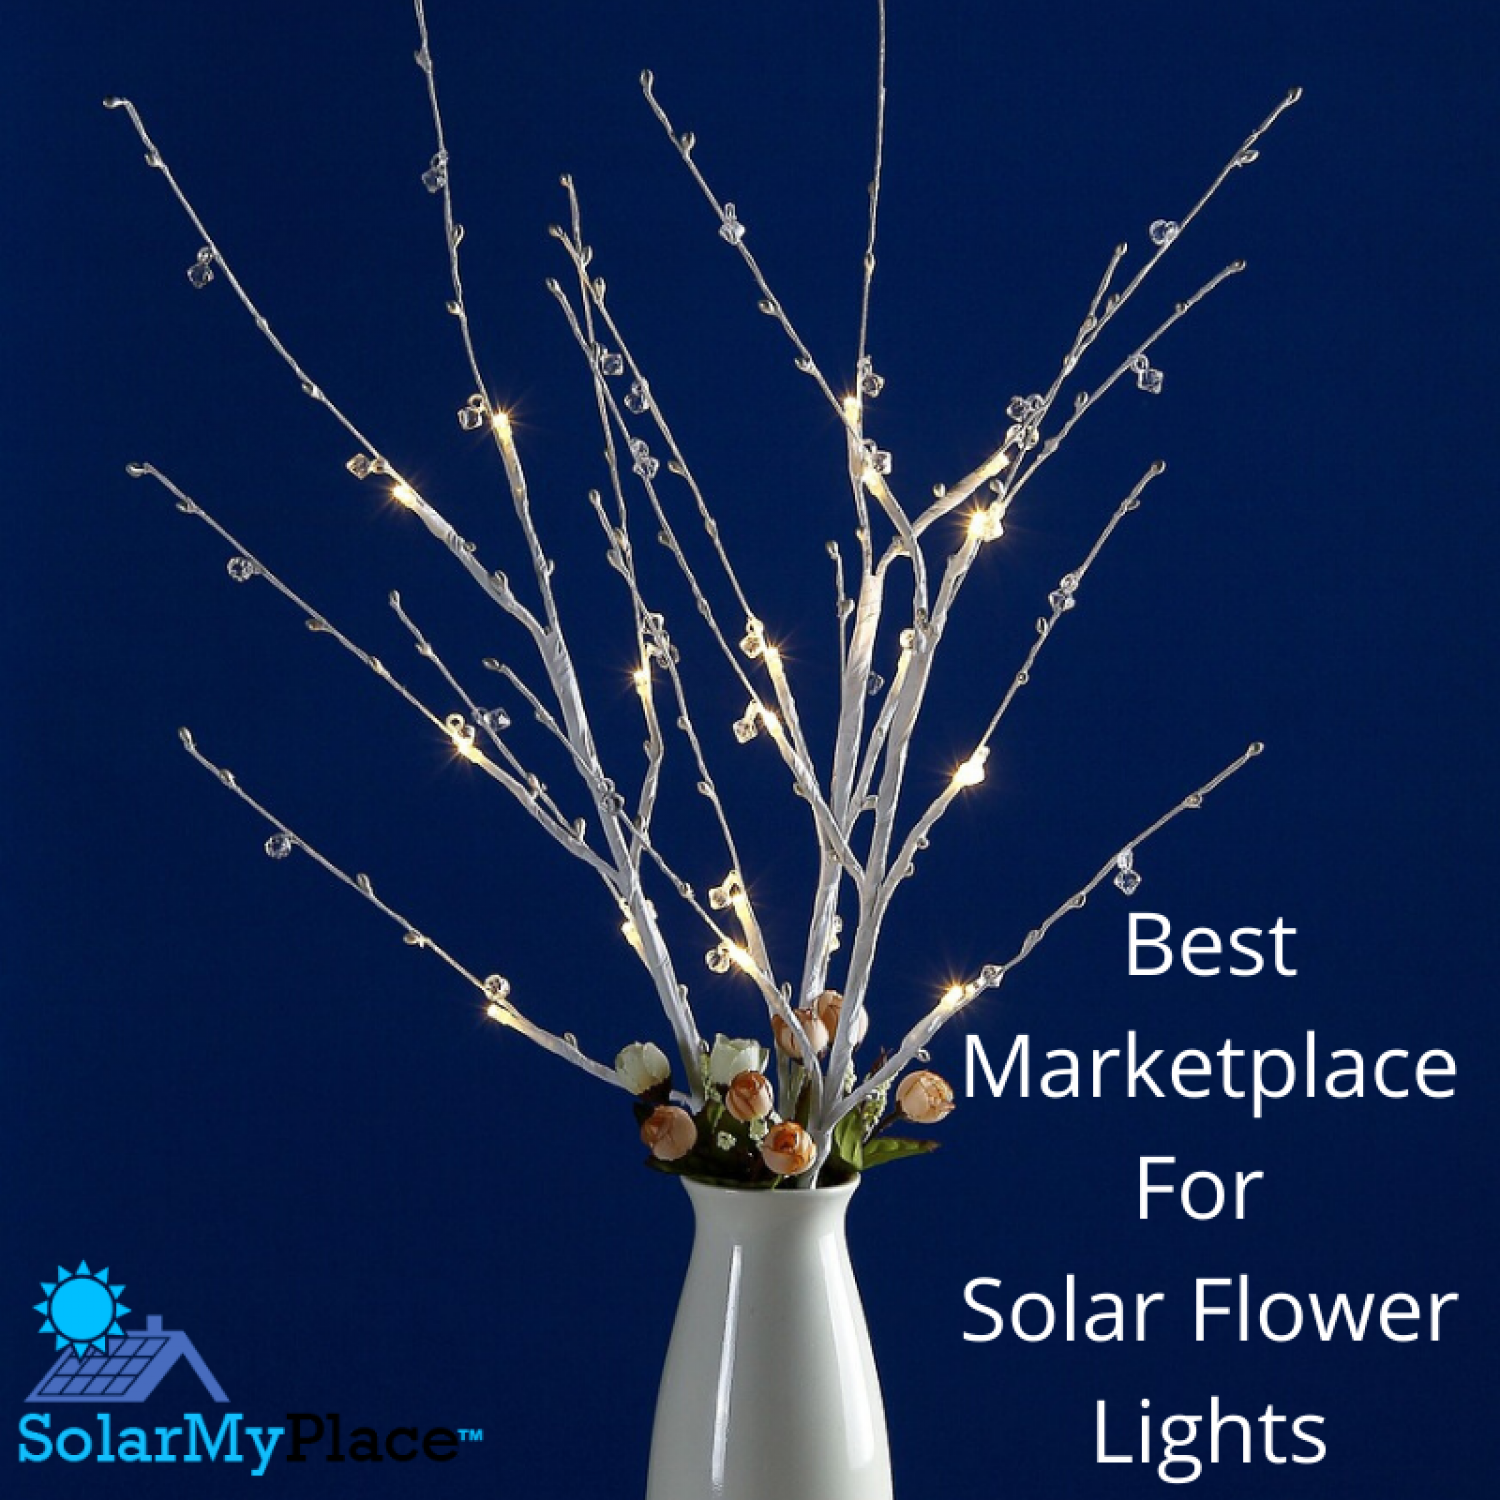 Best Marketplace For Solar Flower Lights - Solarmyplace.org Infographic